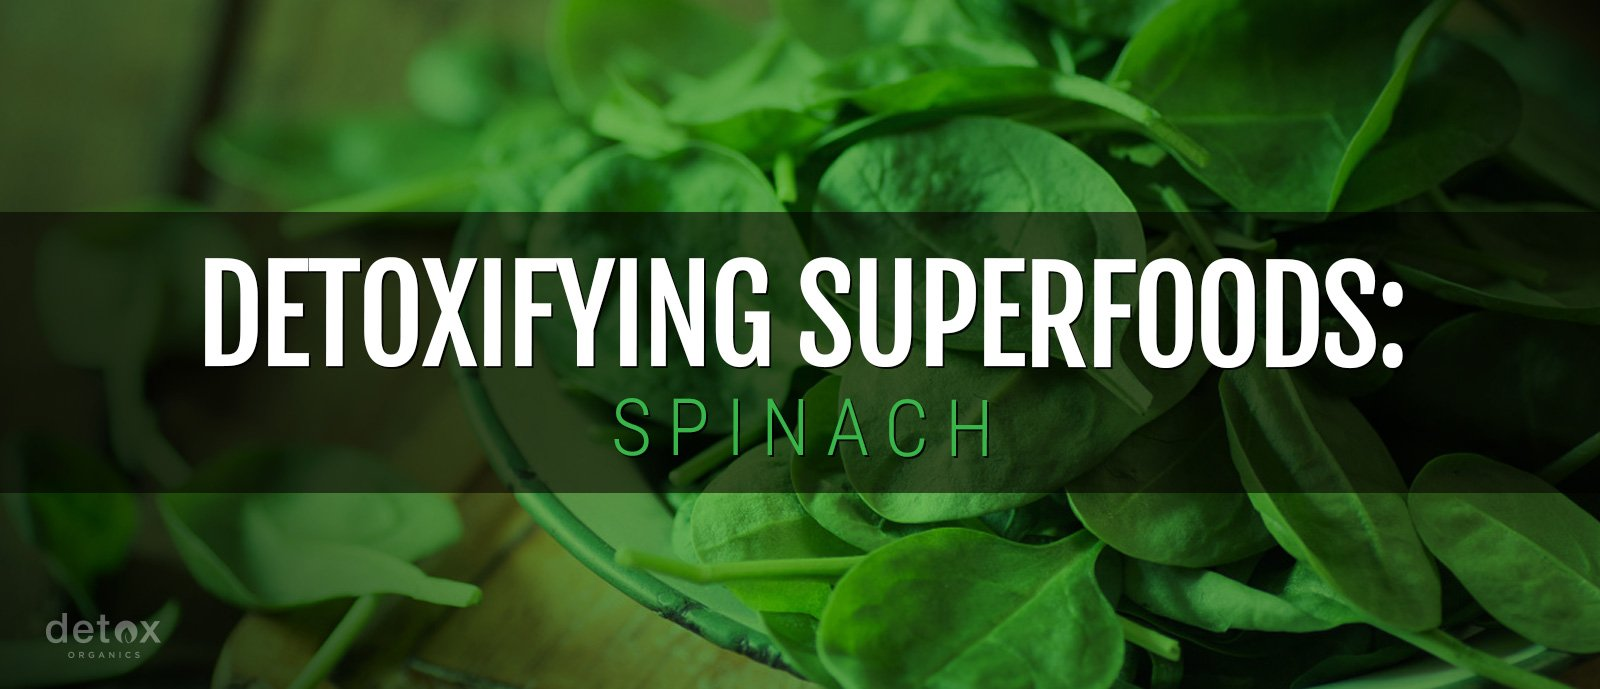 Detoxifying Superfoods: Spinach